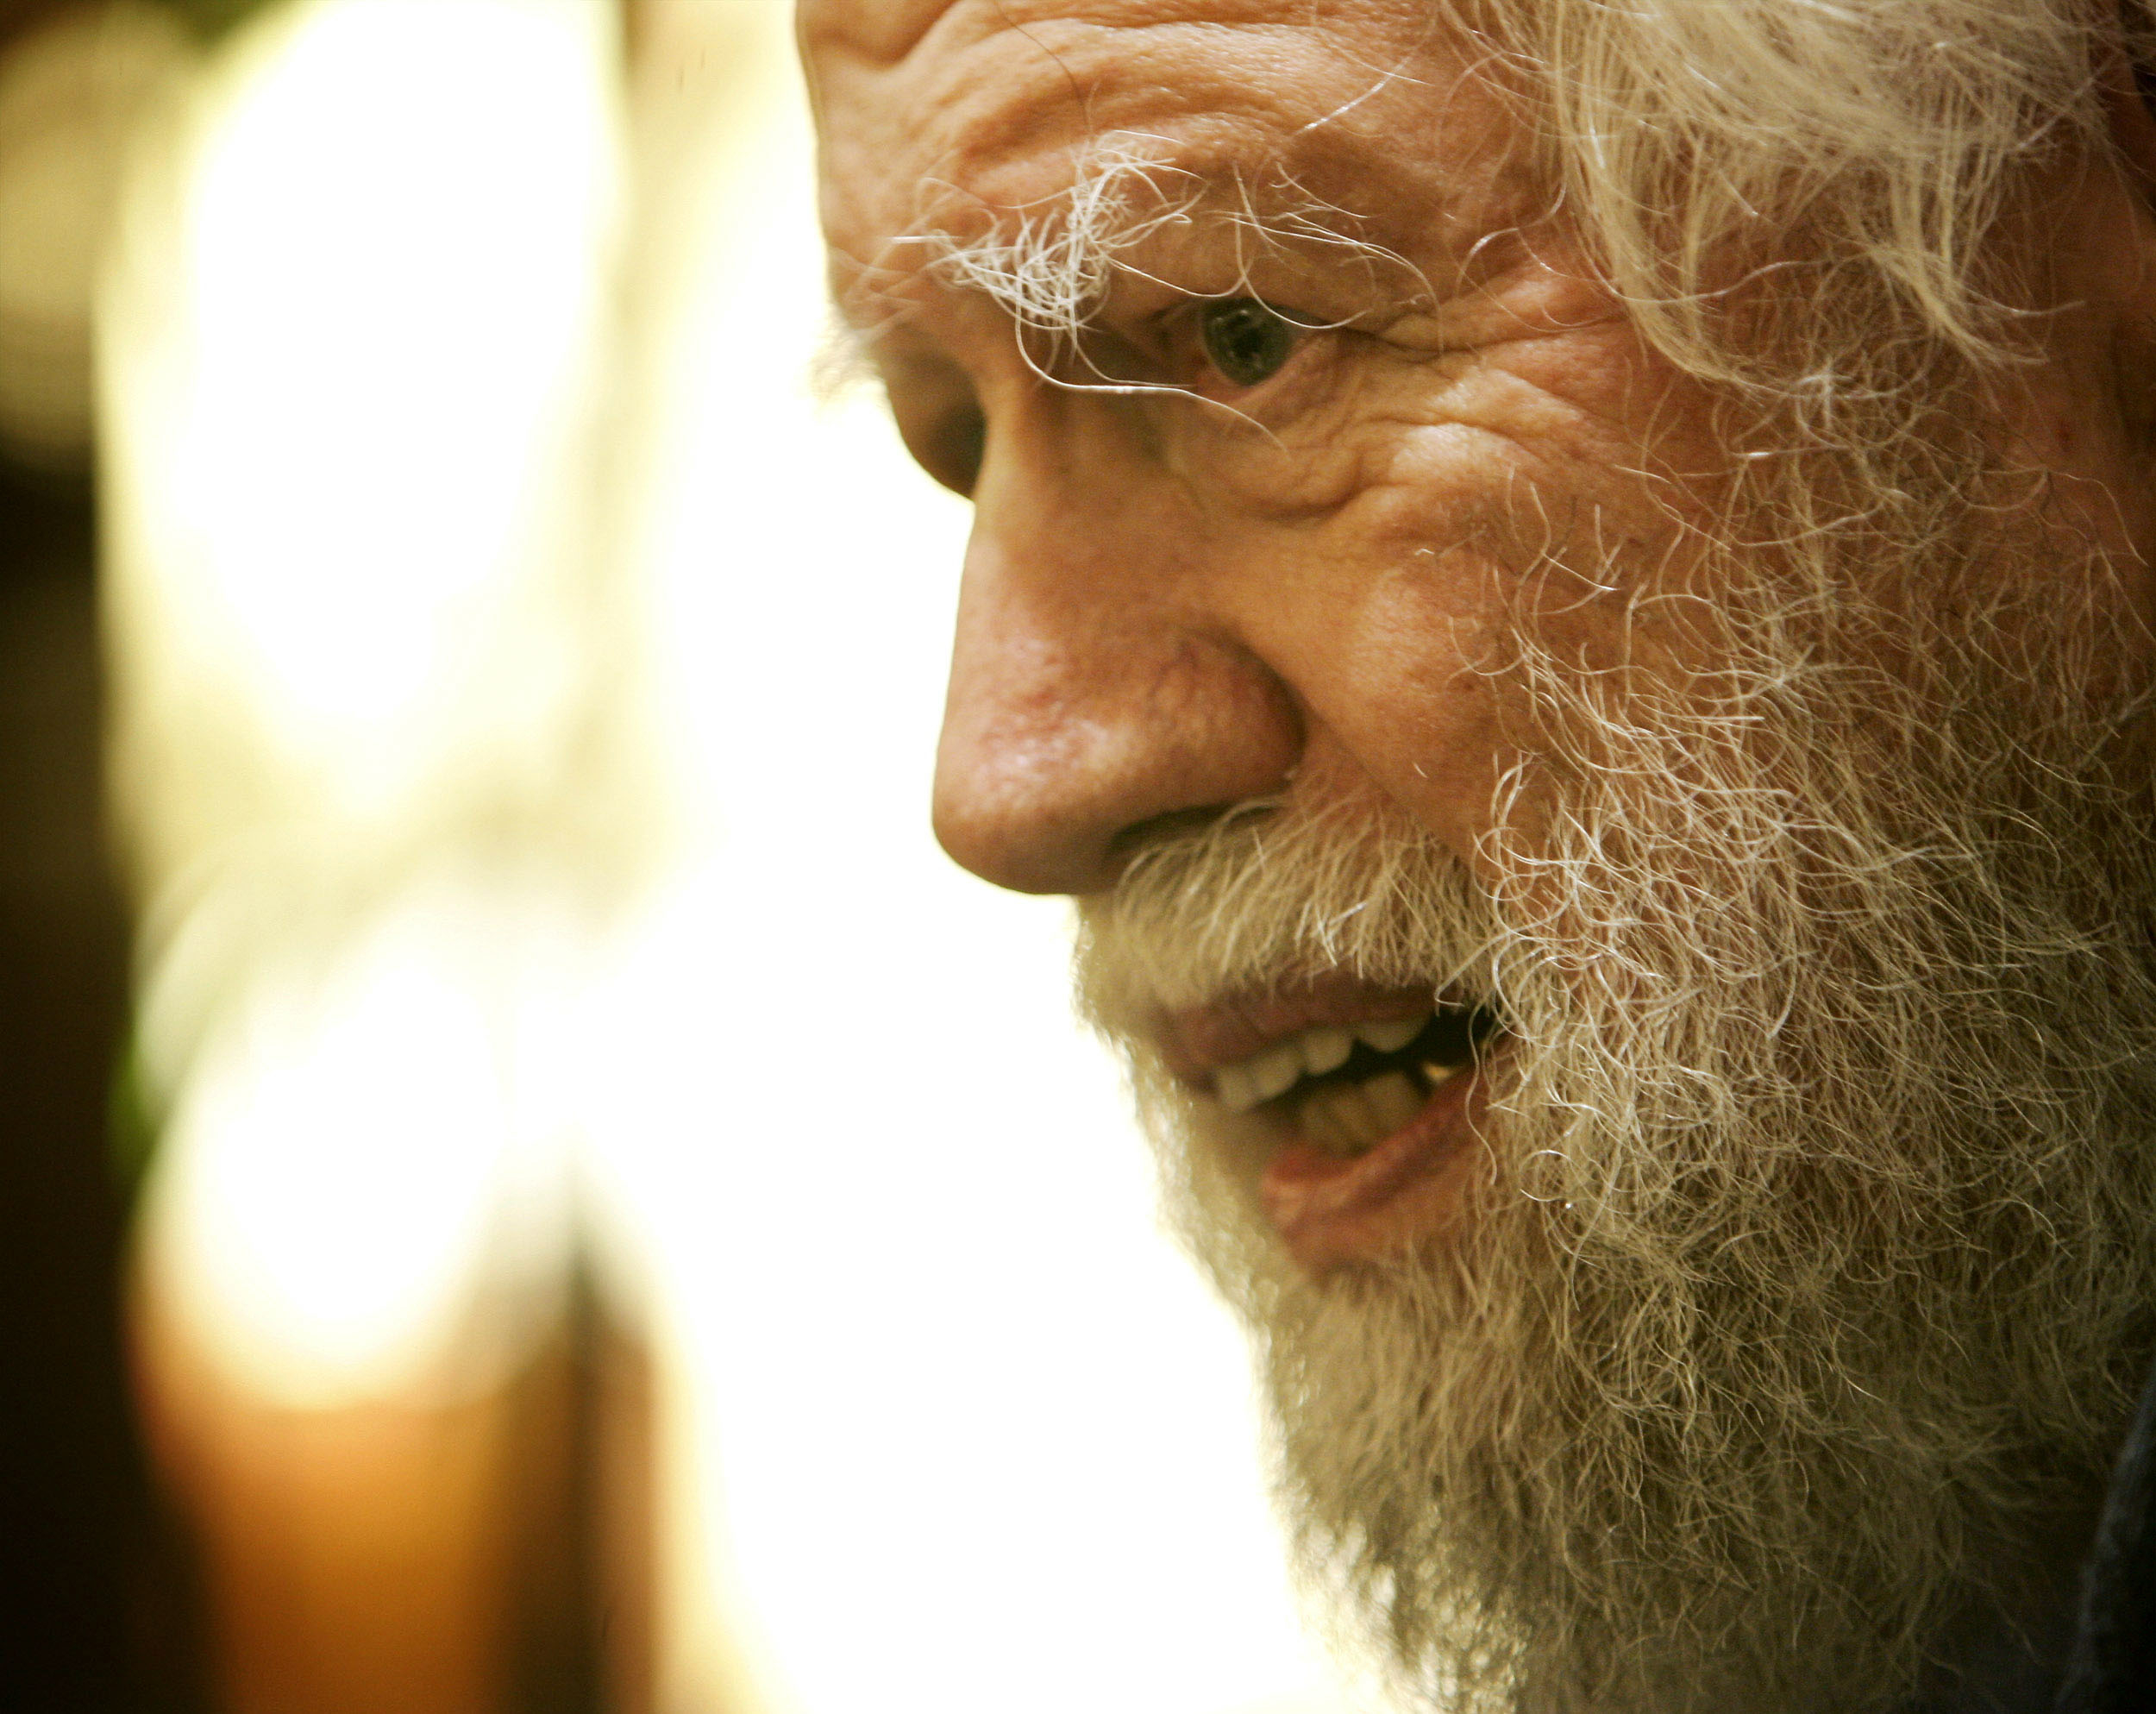 Alexander Shulgin, pharmacologist and chemist known for his creation of new psychoactive chemicals, is interviewed in Cambridge, Mass., on Dec. 1, 2005